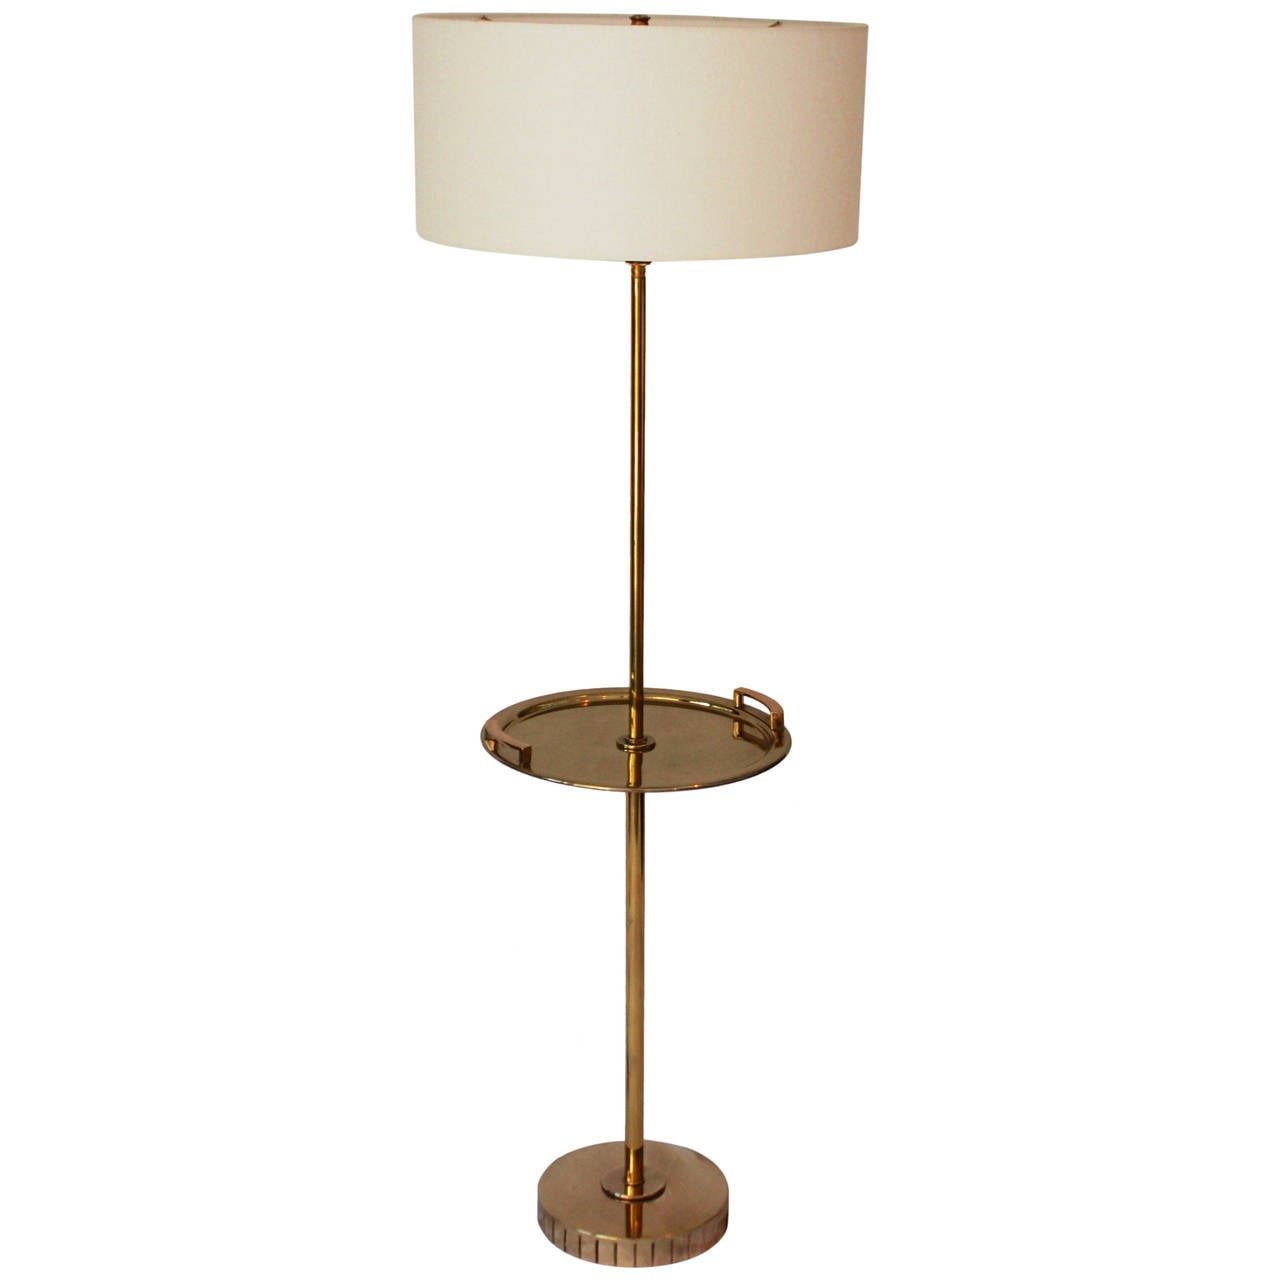 Brass floor standing lamp with brass tray table at 1stdibs for Floor lamp with table